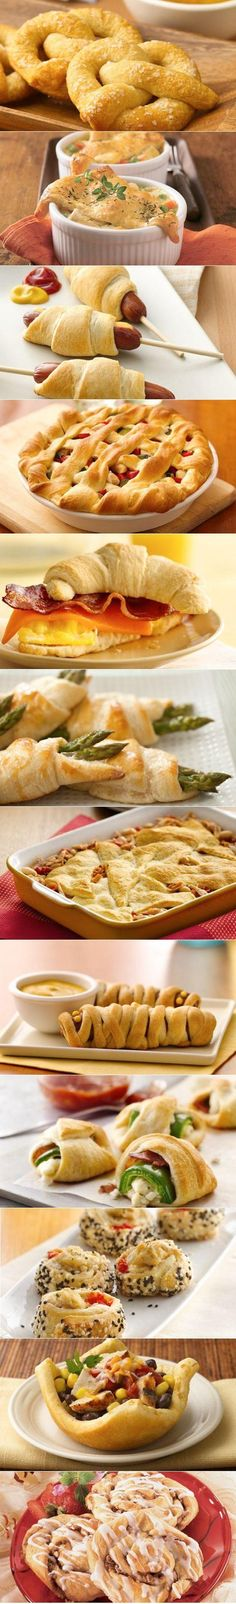 Ideas on how you can use crescent dough  #thetexasfoodnetwork #texas #recipes